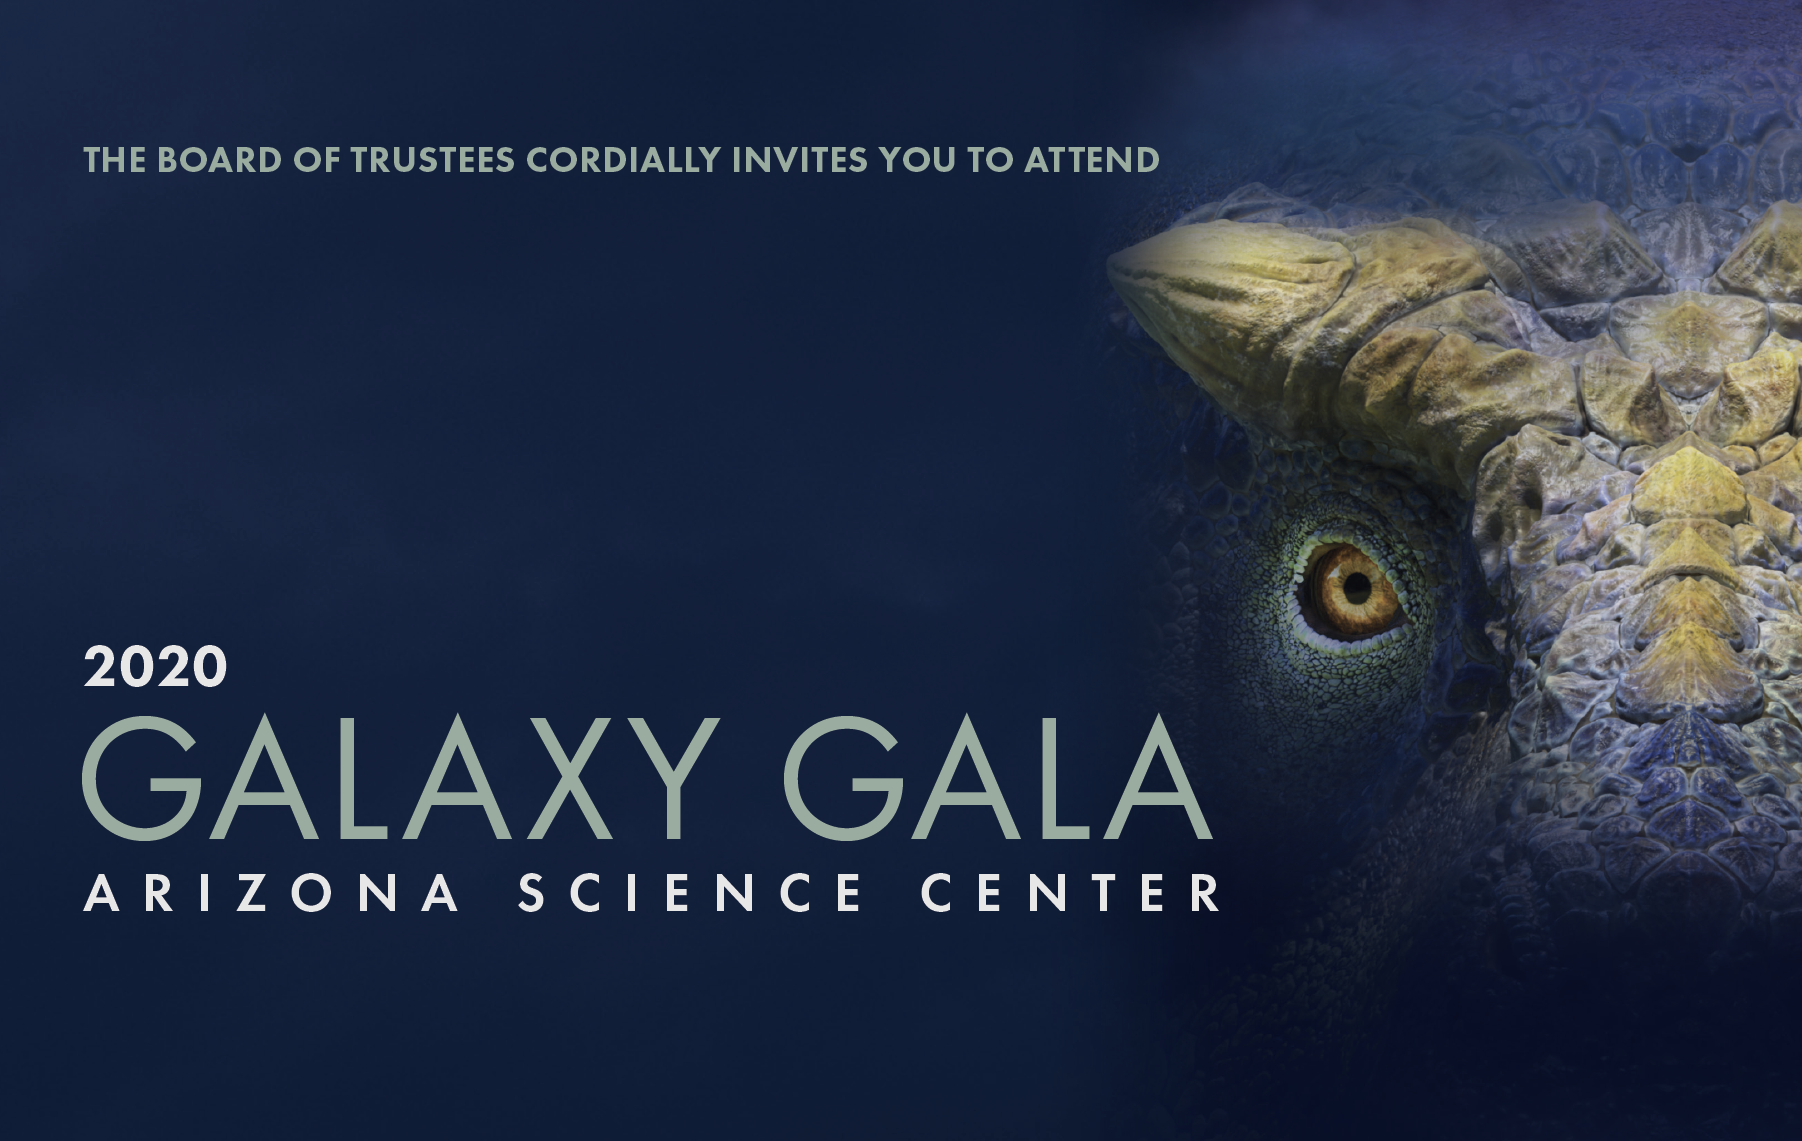 Galaxy Gala 2020 Invitation